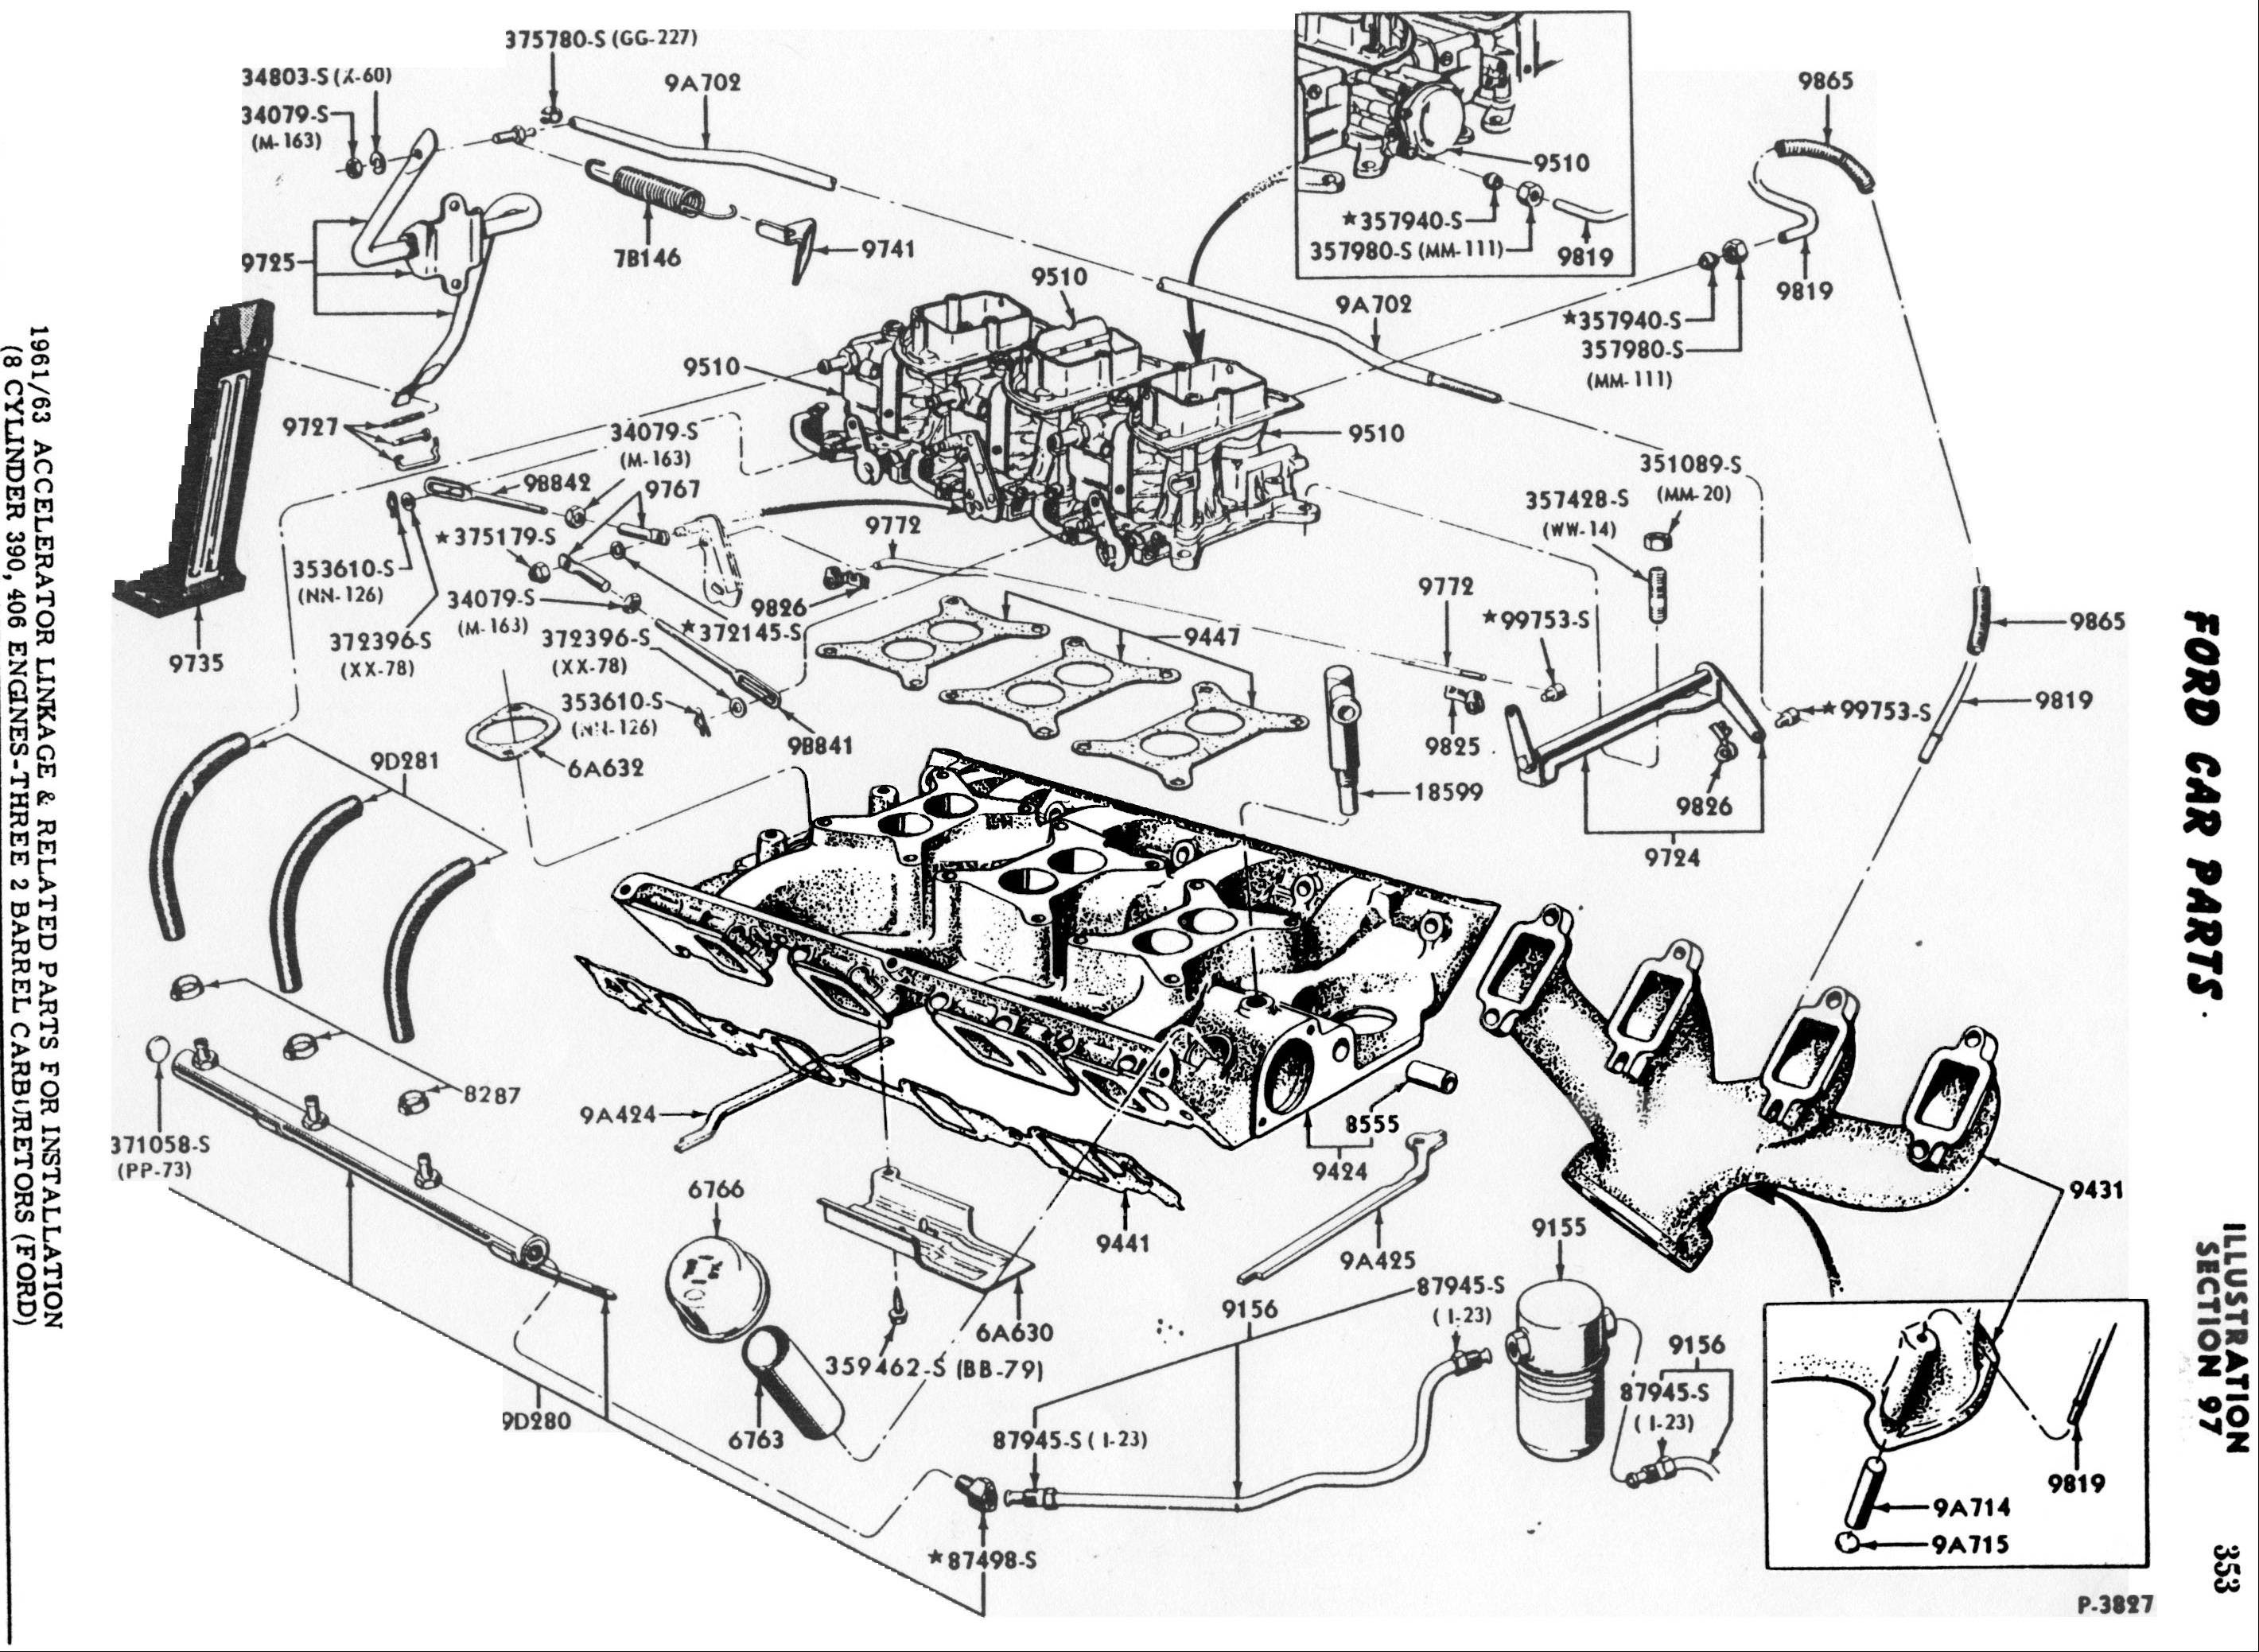 Wiring Diagram 9 Ford 300 Inline 6 Vacuum Diagram Manual Guide